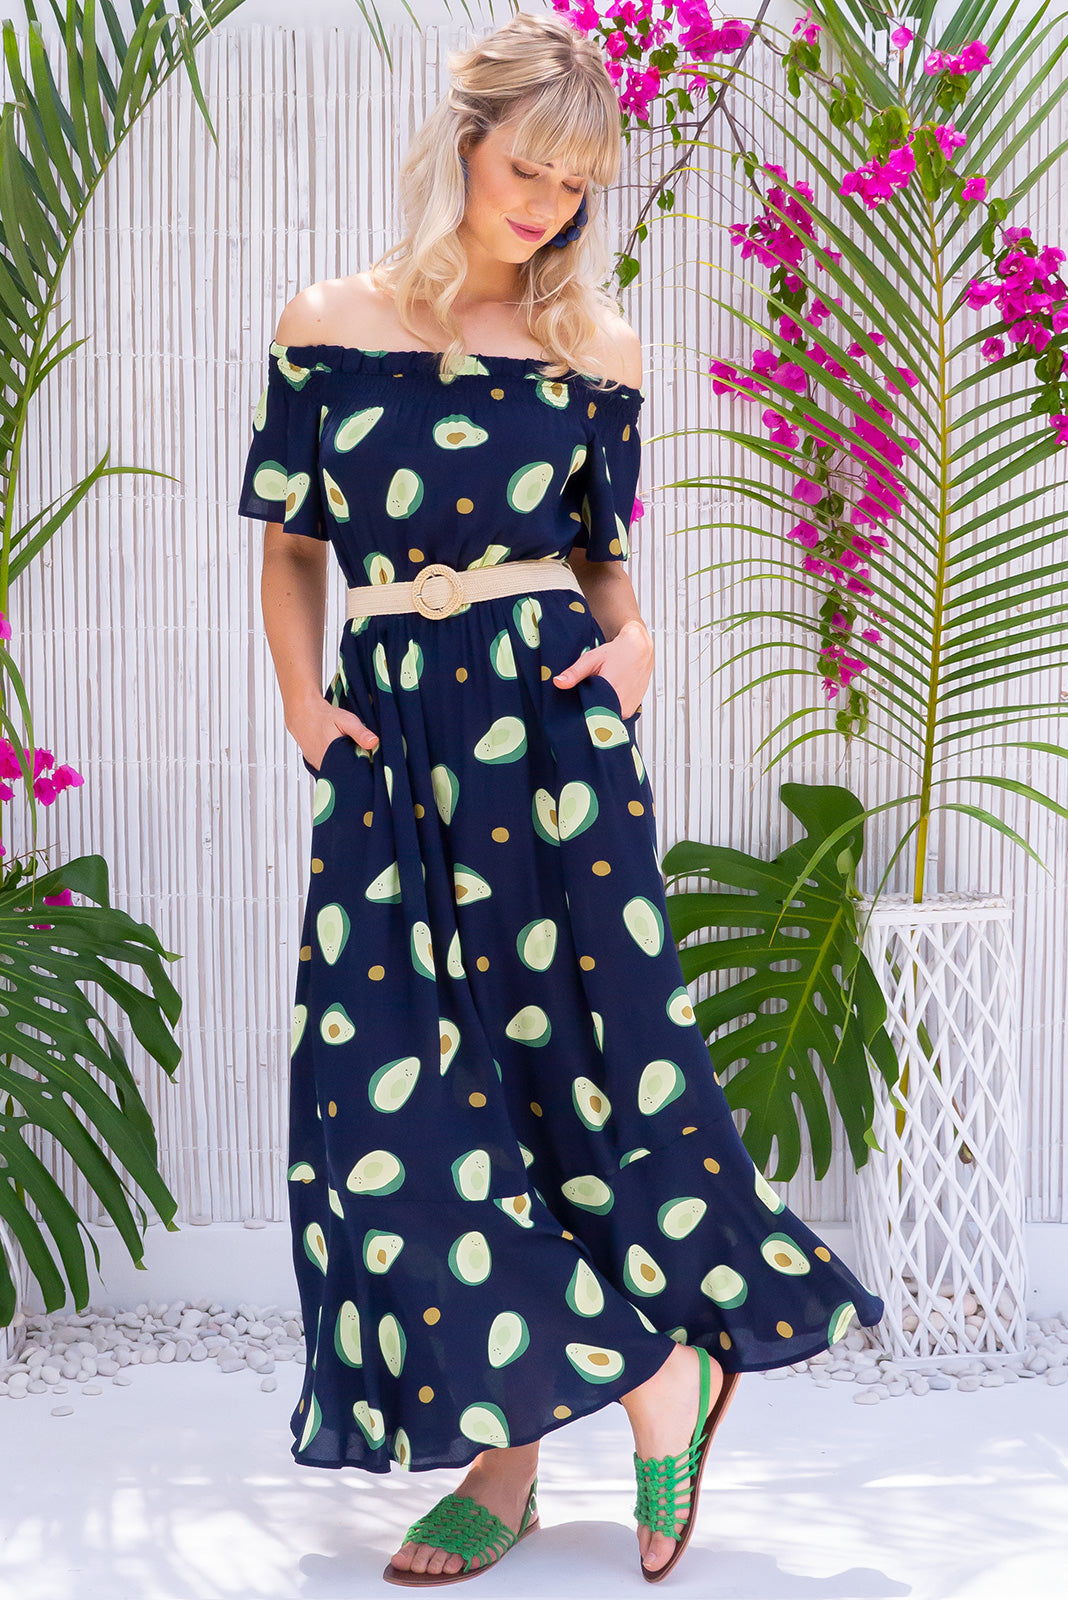 Surfmist Avocado Maxi Dress, bohemian summers style, 100% rayon, slight flare at hem, off the shoulder style, soft elastic ruching gently holds dress across shoulders, side pockets, elastic waist, deep navy base with a medium smiling avocado print.